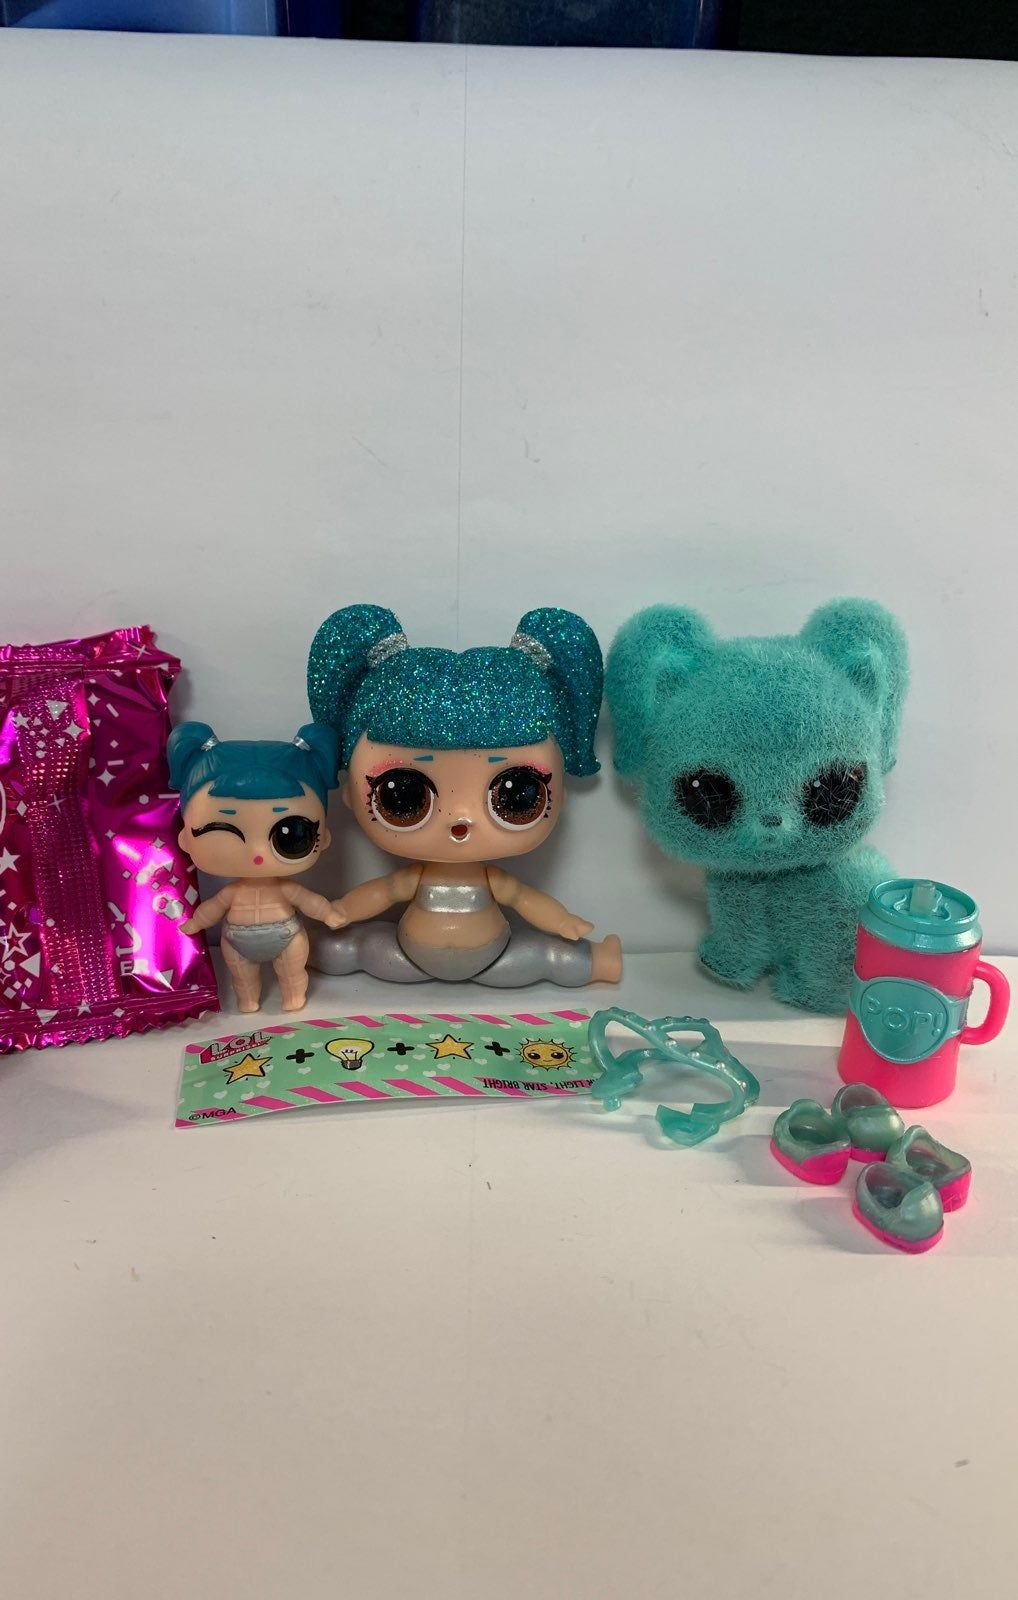 Lol Surprise Sparkles Fuzzy Pets Series 3 Glamstronaut Sparkles Lil Glamstronaut And Racoonstronaut All Are Brand New Accesso Lol Dolls Doll Accessories